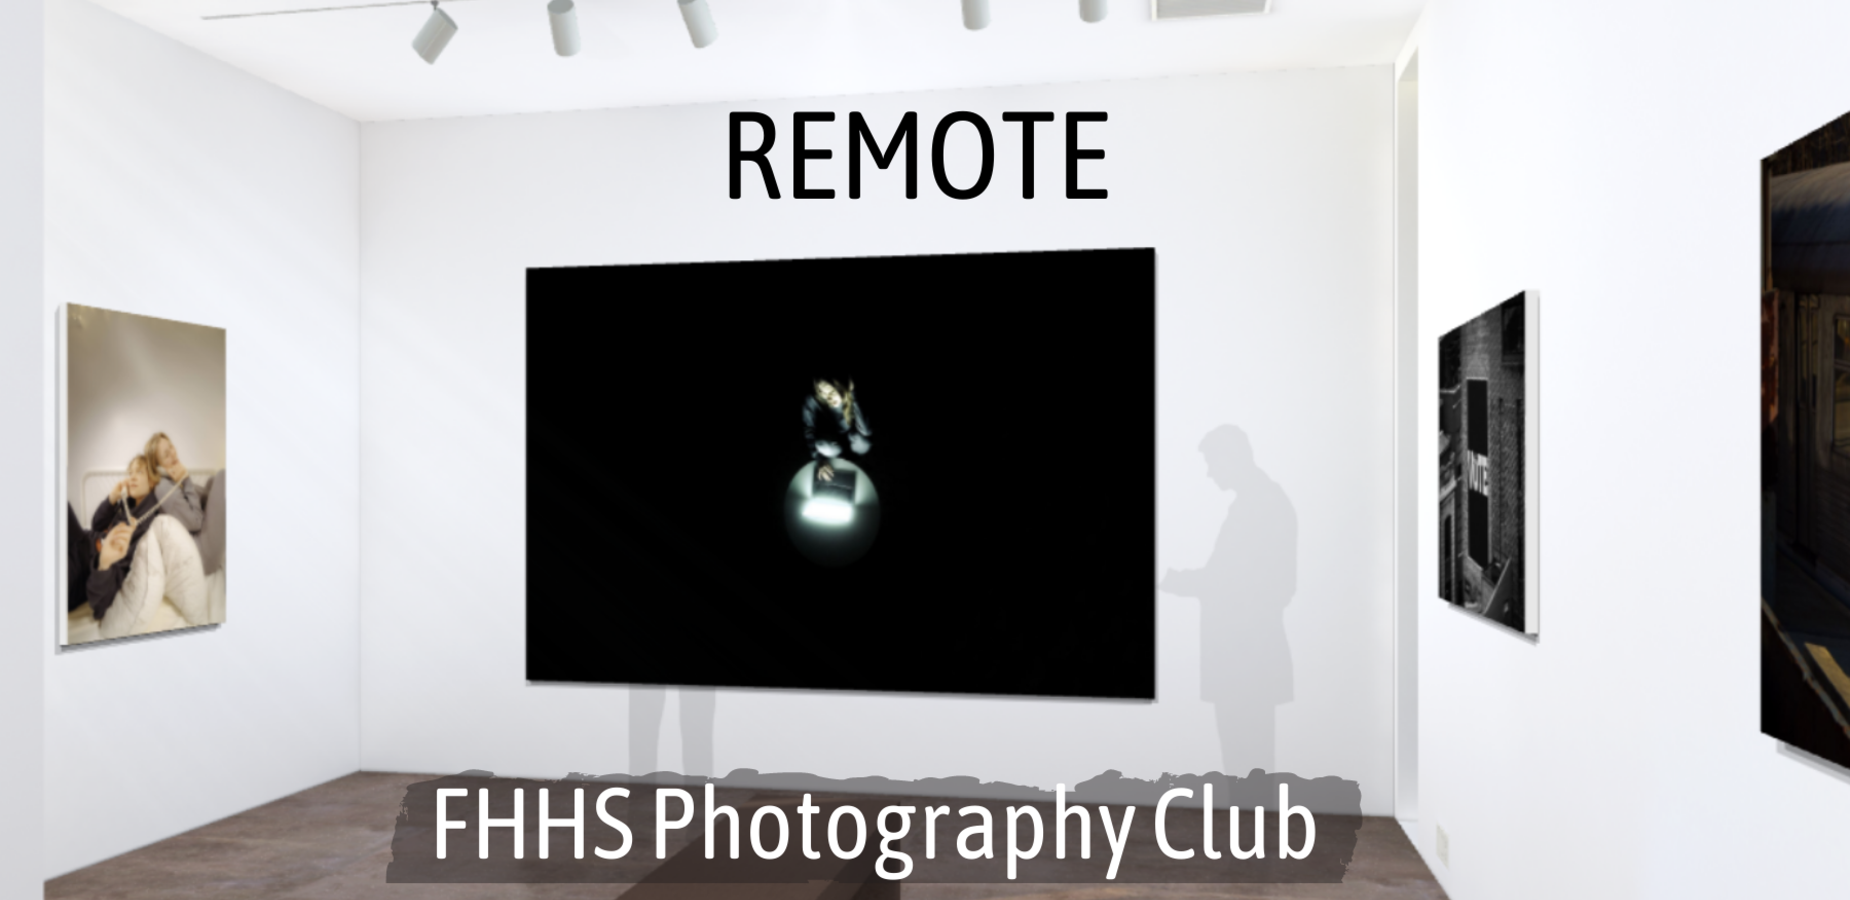 Remote. FHHS Photography Club. 2021 Virtual Art Show